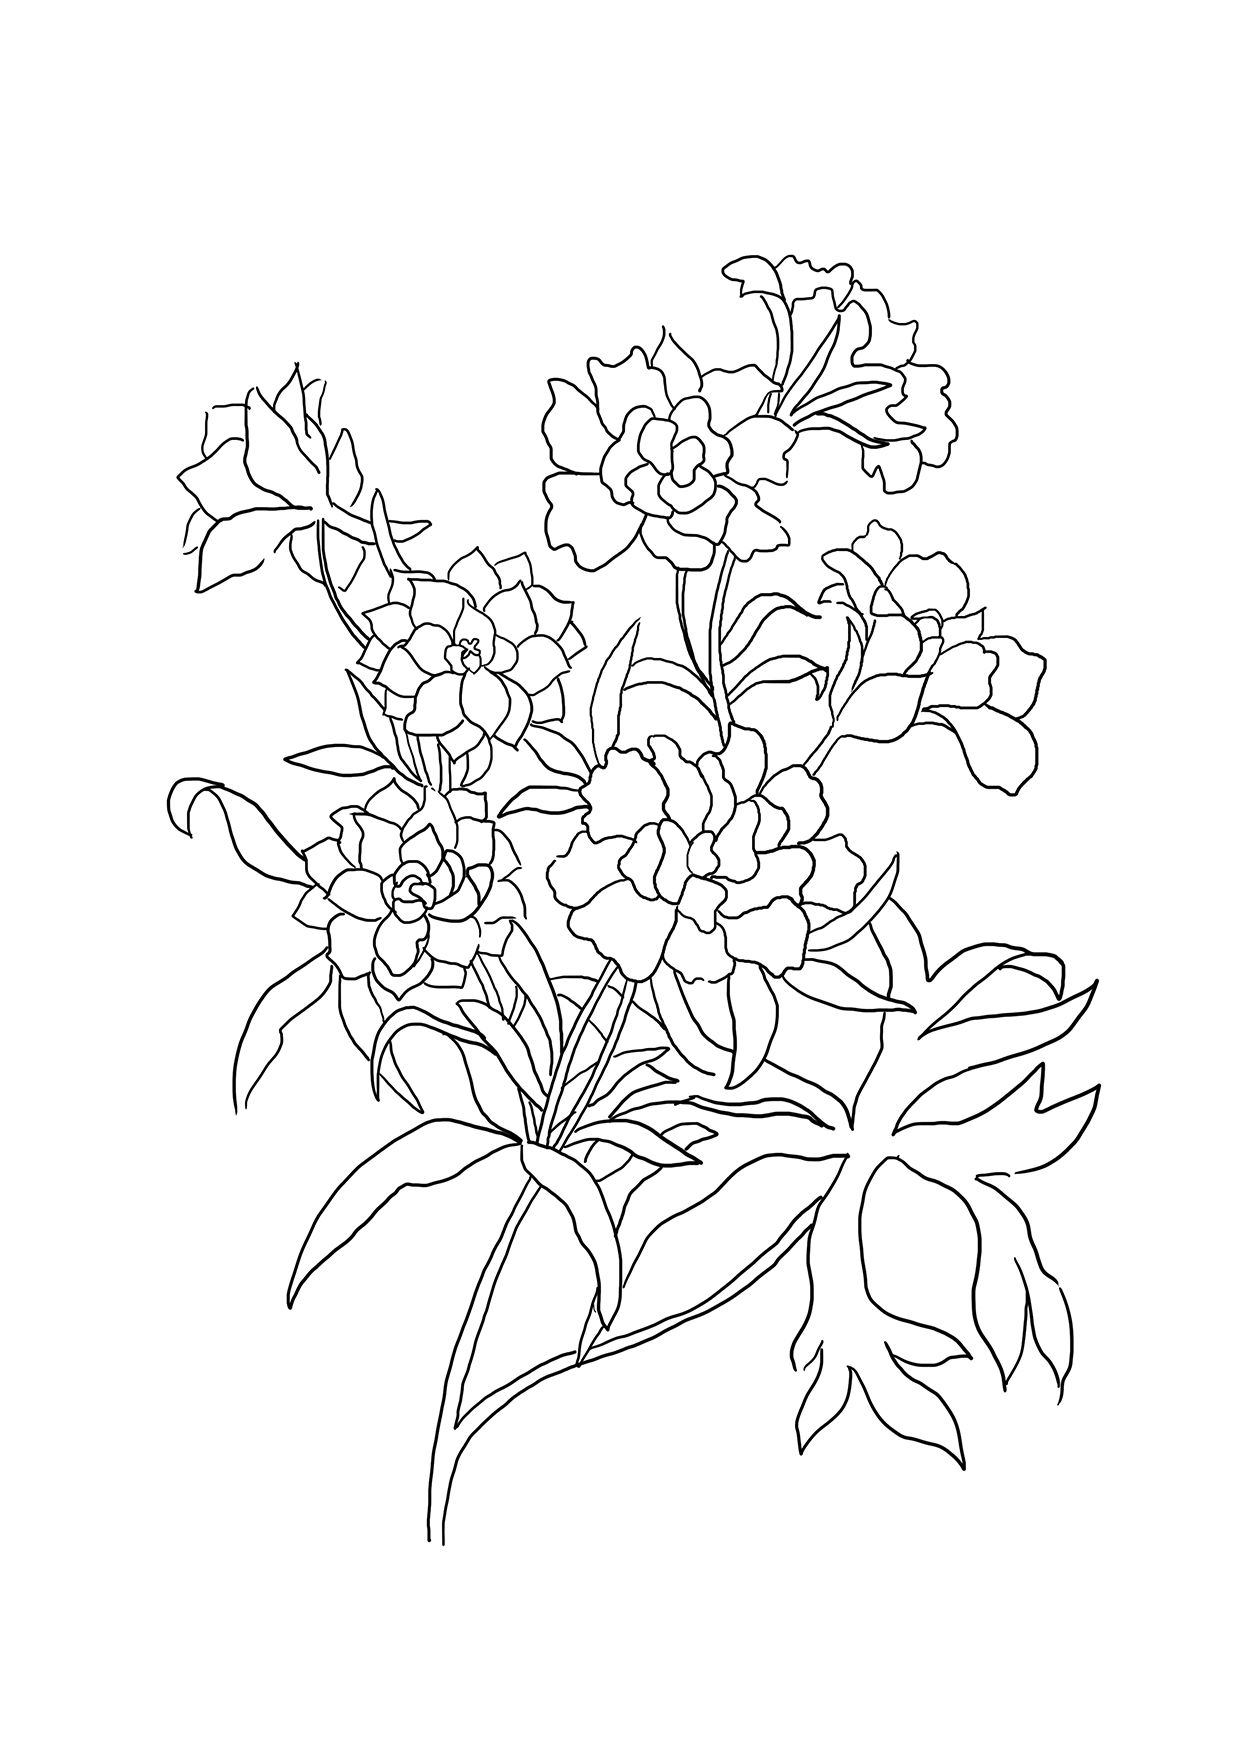 1240x1754 Inspiring Japanese Flower Coloring Pages Wonderfulcherry Blossom